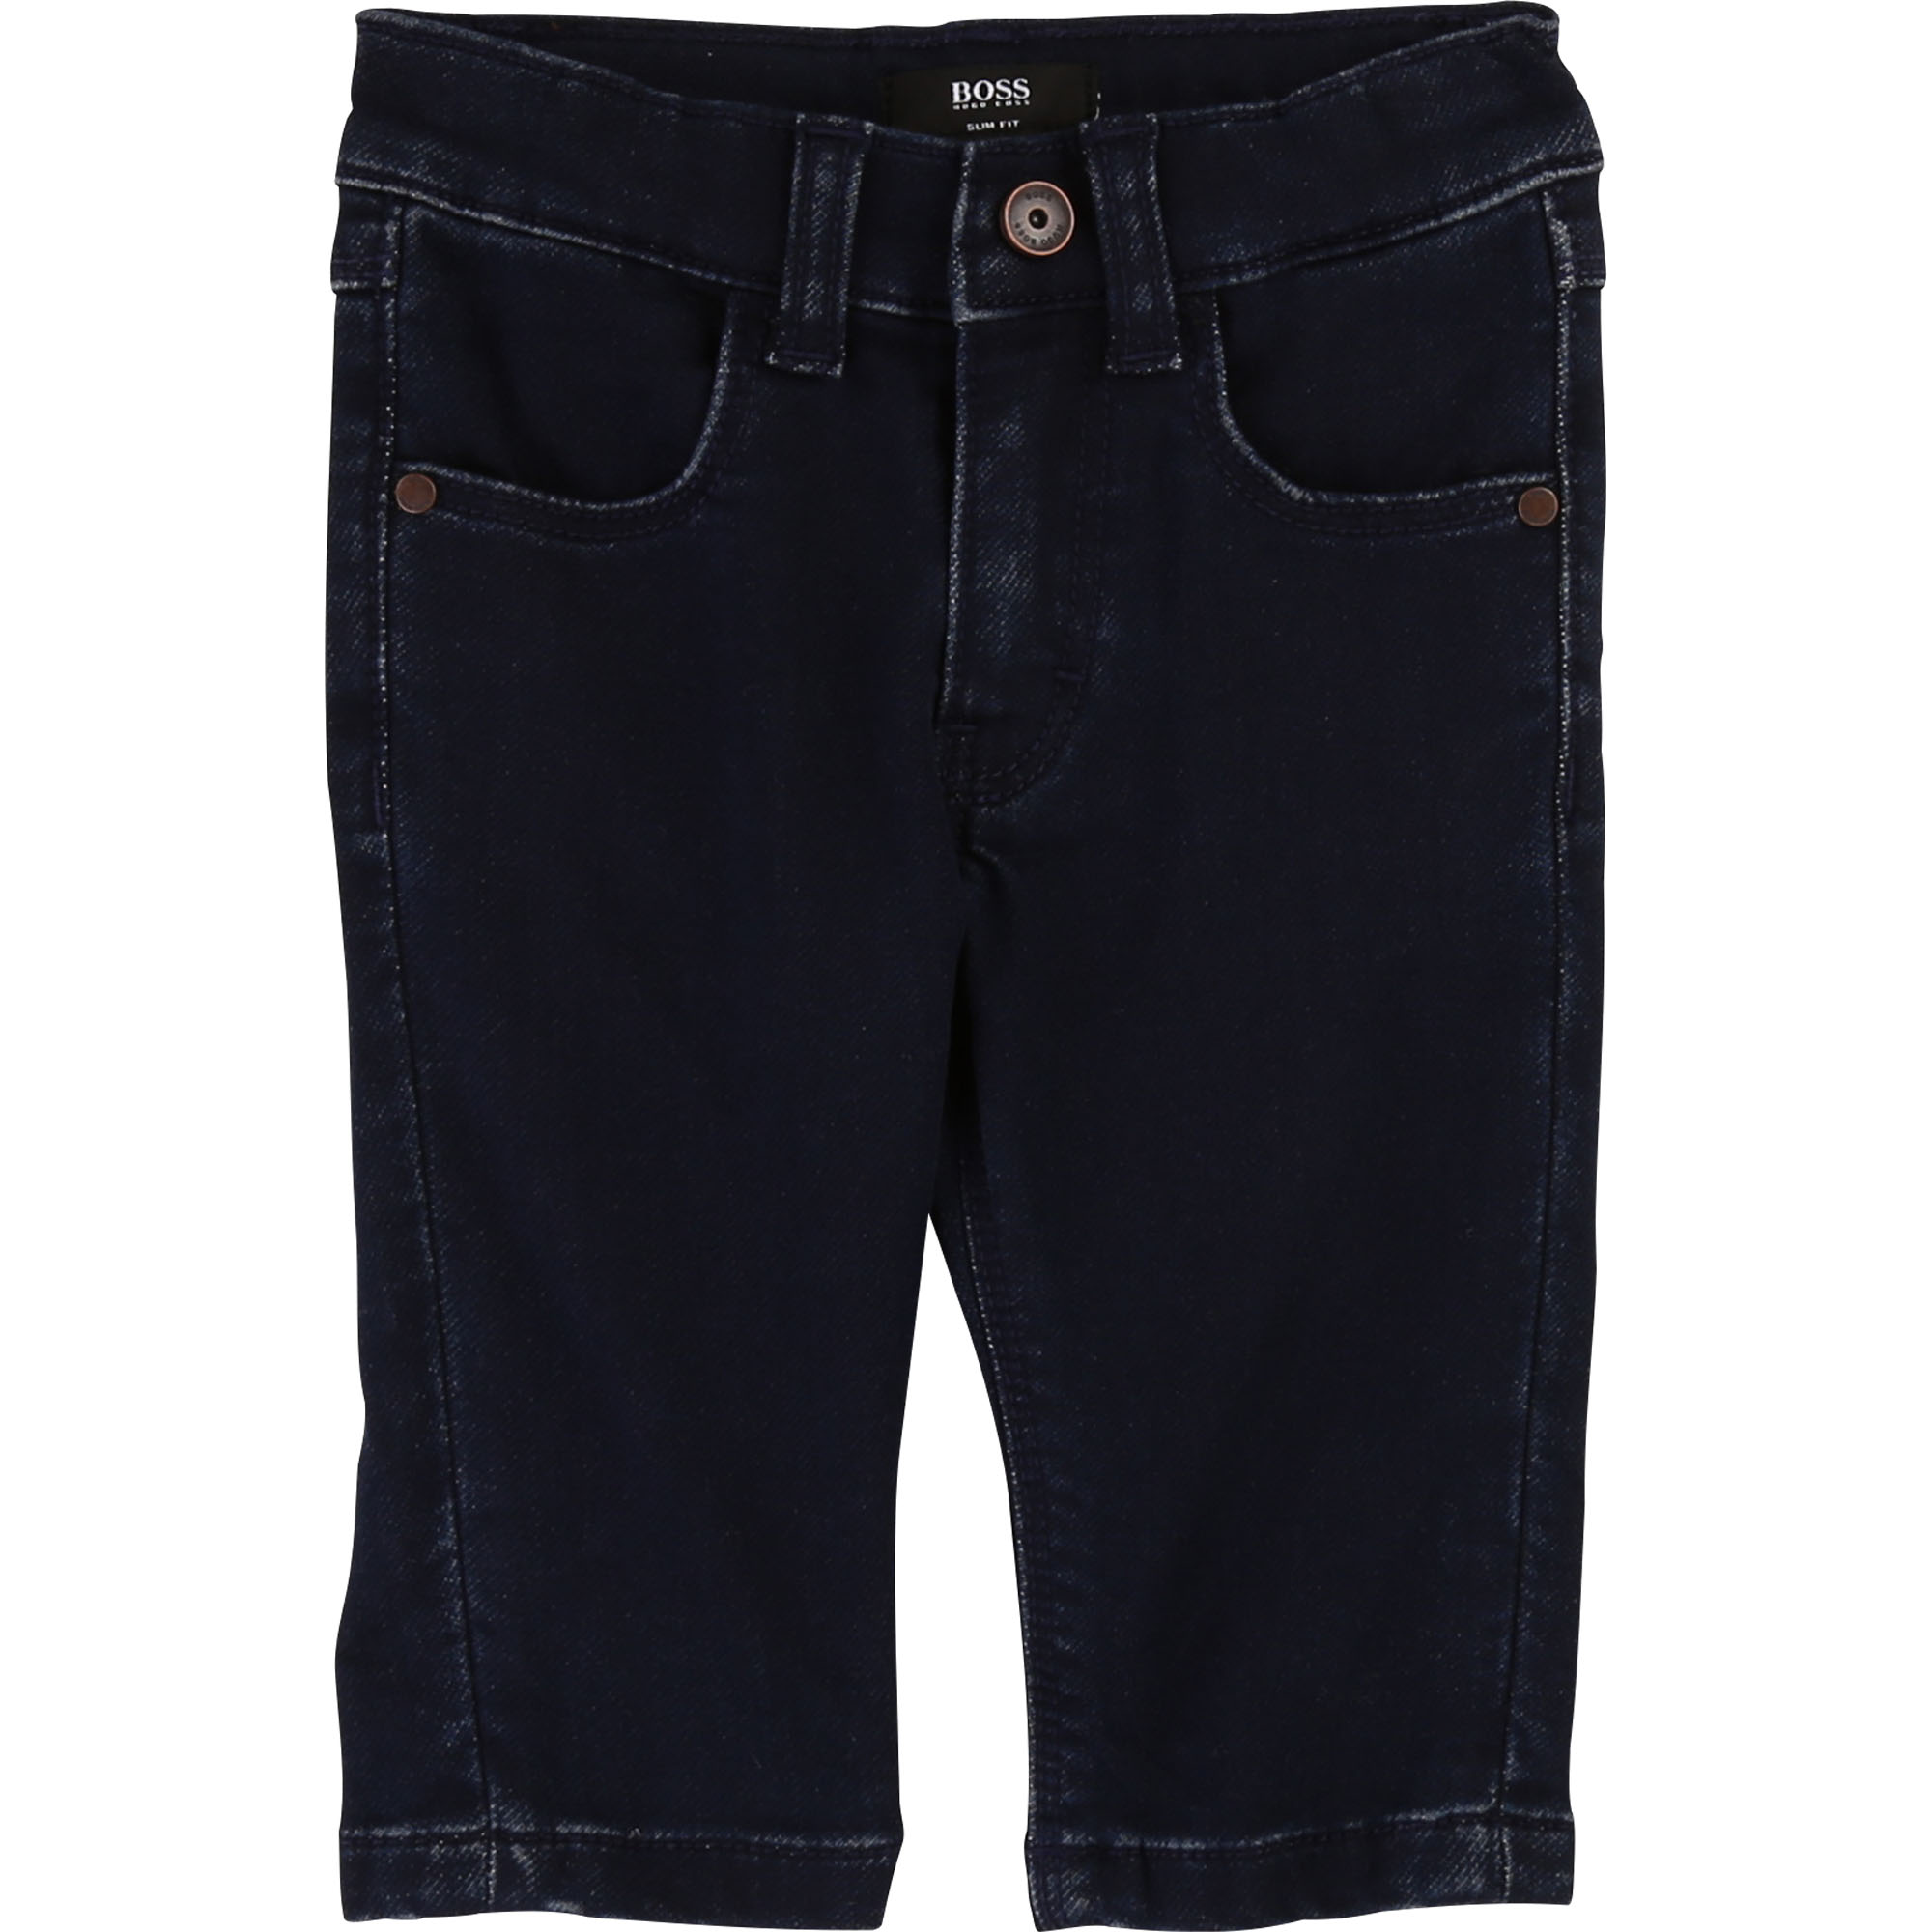 Pantalon stretch en denim brut BOSS pour GARCON